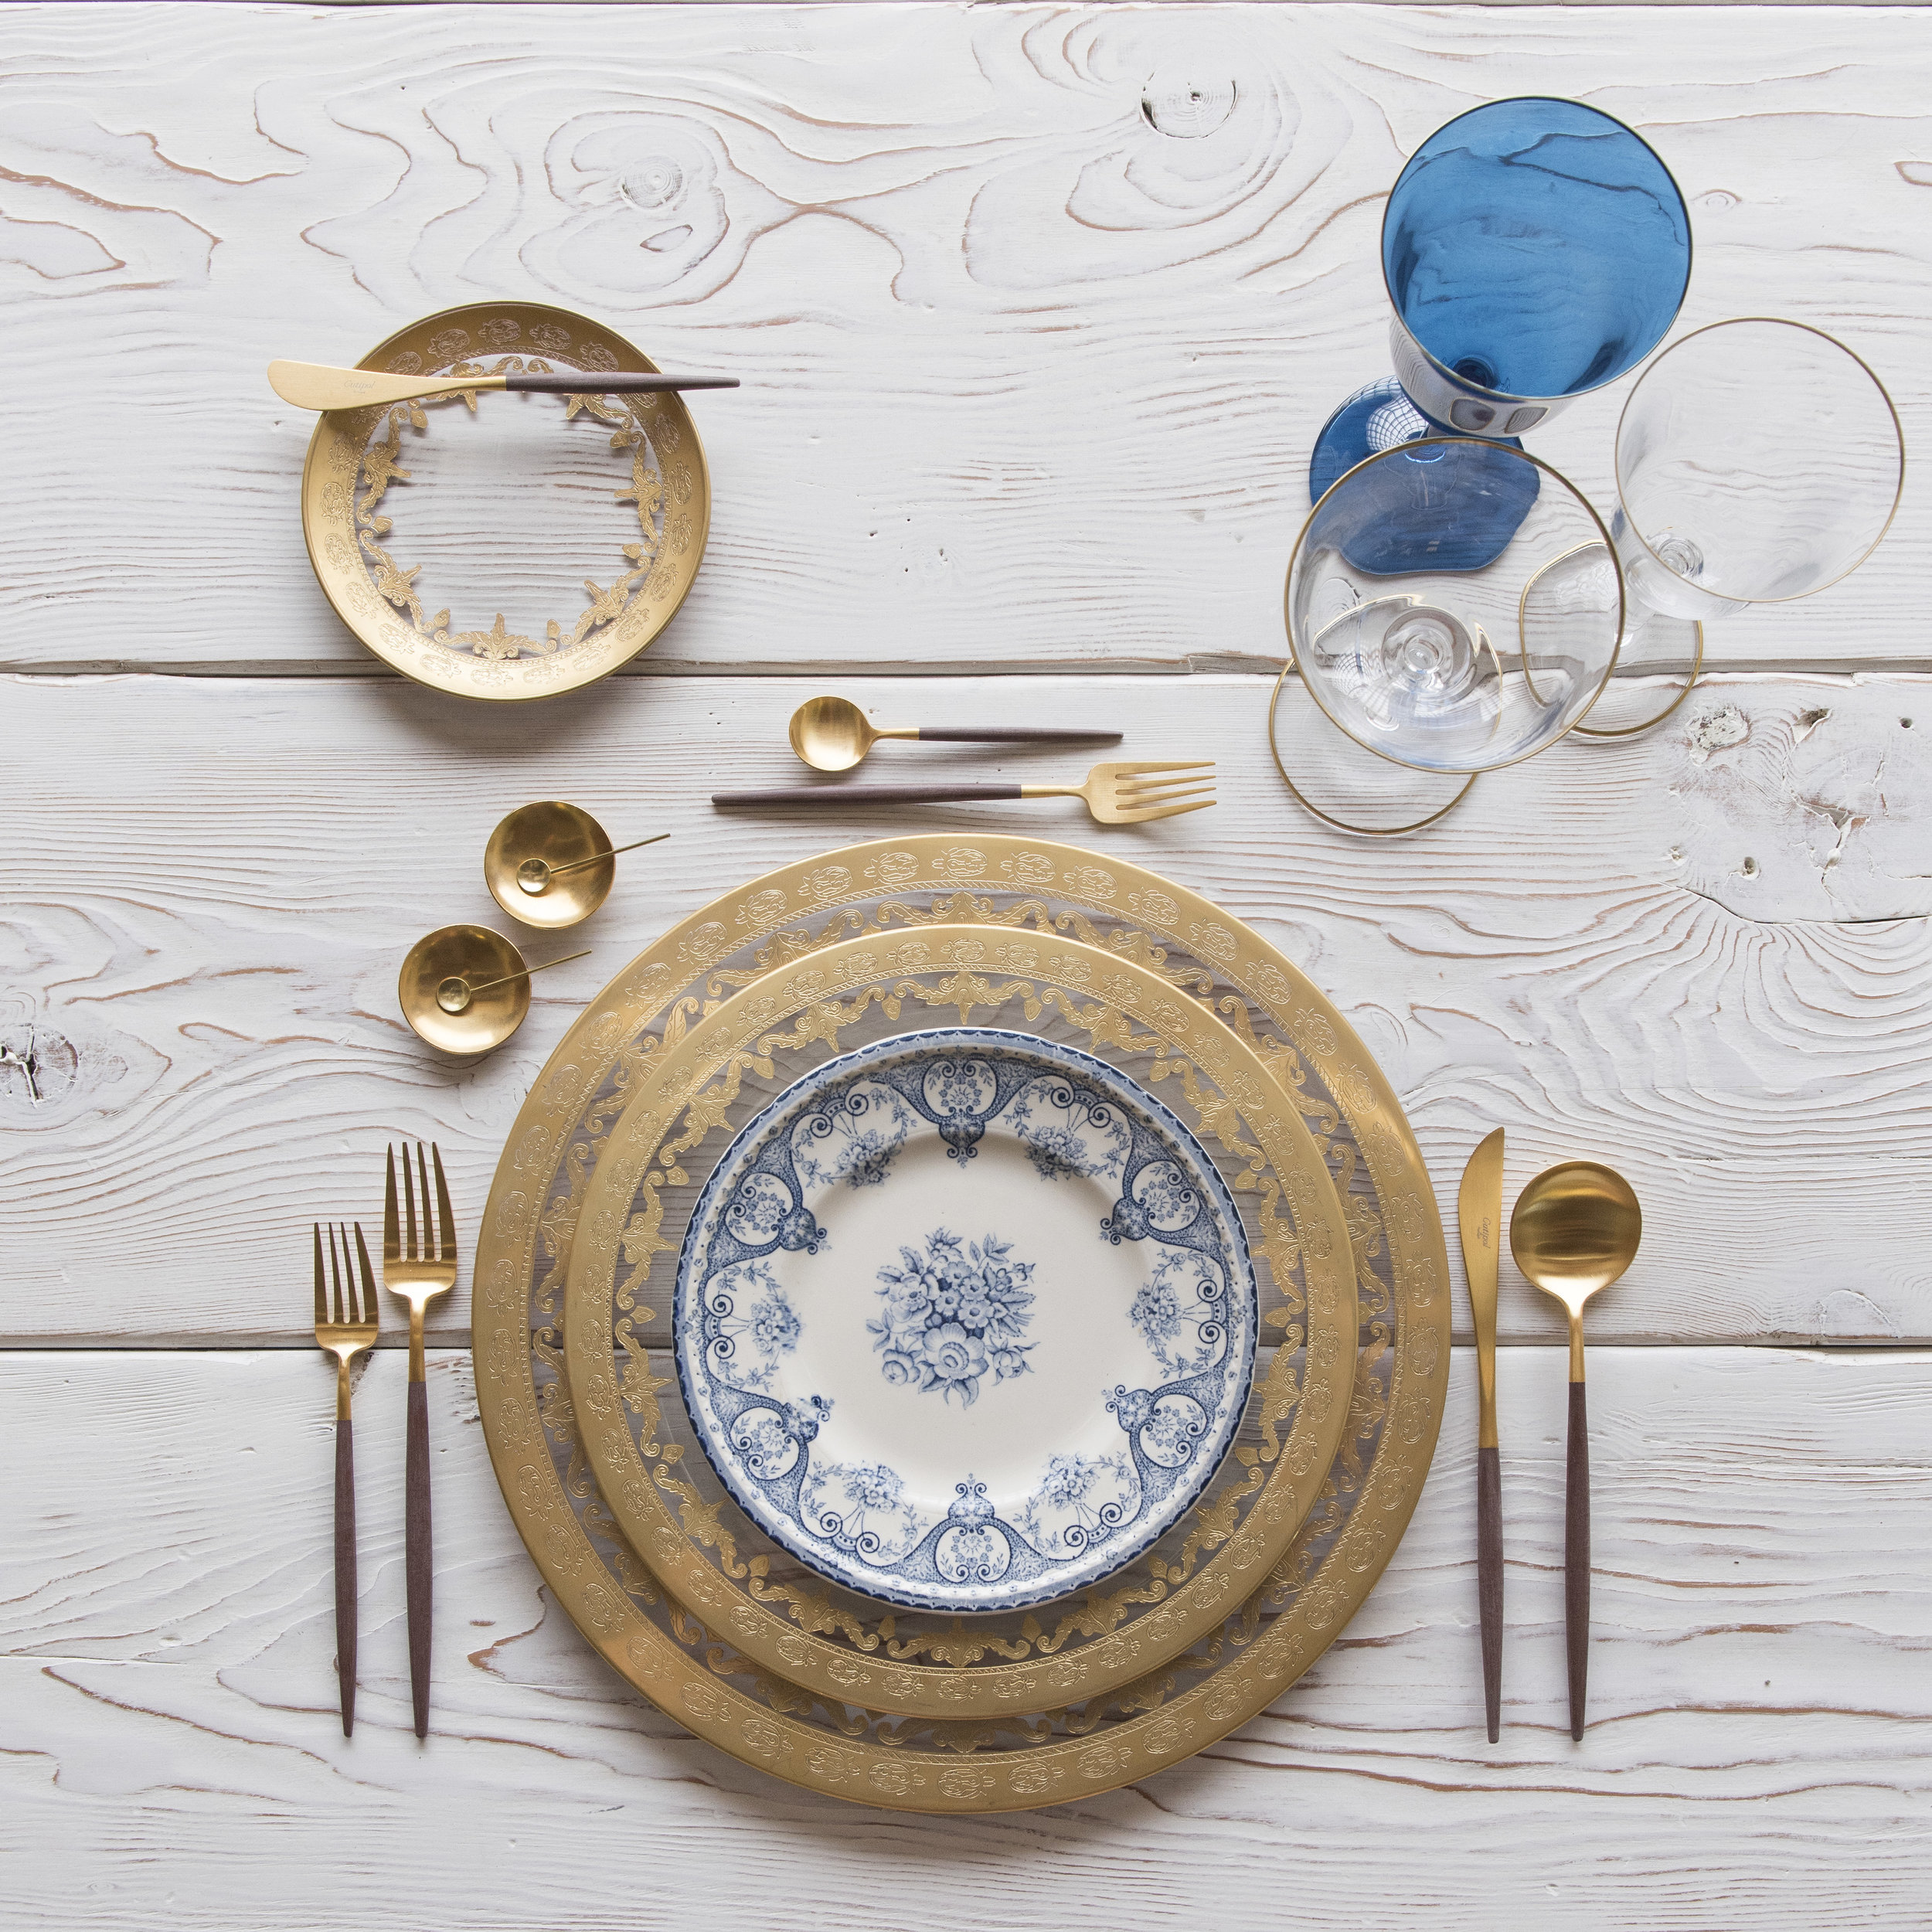 RENT: Versailles Glass Chargers/Dinnerware in 24k Gold + Blue Garden Collection Vintage China + Goa Flatware in Brushed 24k Gold/Wood + Chloe 24k Gold Rimmed Stemware + Chloe 24k Gold Rimmed Goblet in Sapphire + 14k Gold Salt Cellars + Tiny Gold Spoons   SHOP: Goa Flatware in Brushed 24k Gold/Wood + Chloe 24k Gold Rimmed Stemware + 14k Gold Salt Cellars + Tiny Gold Spoons